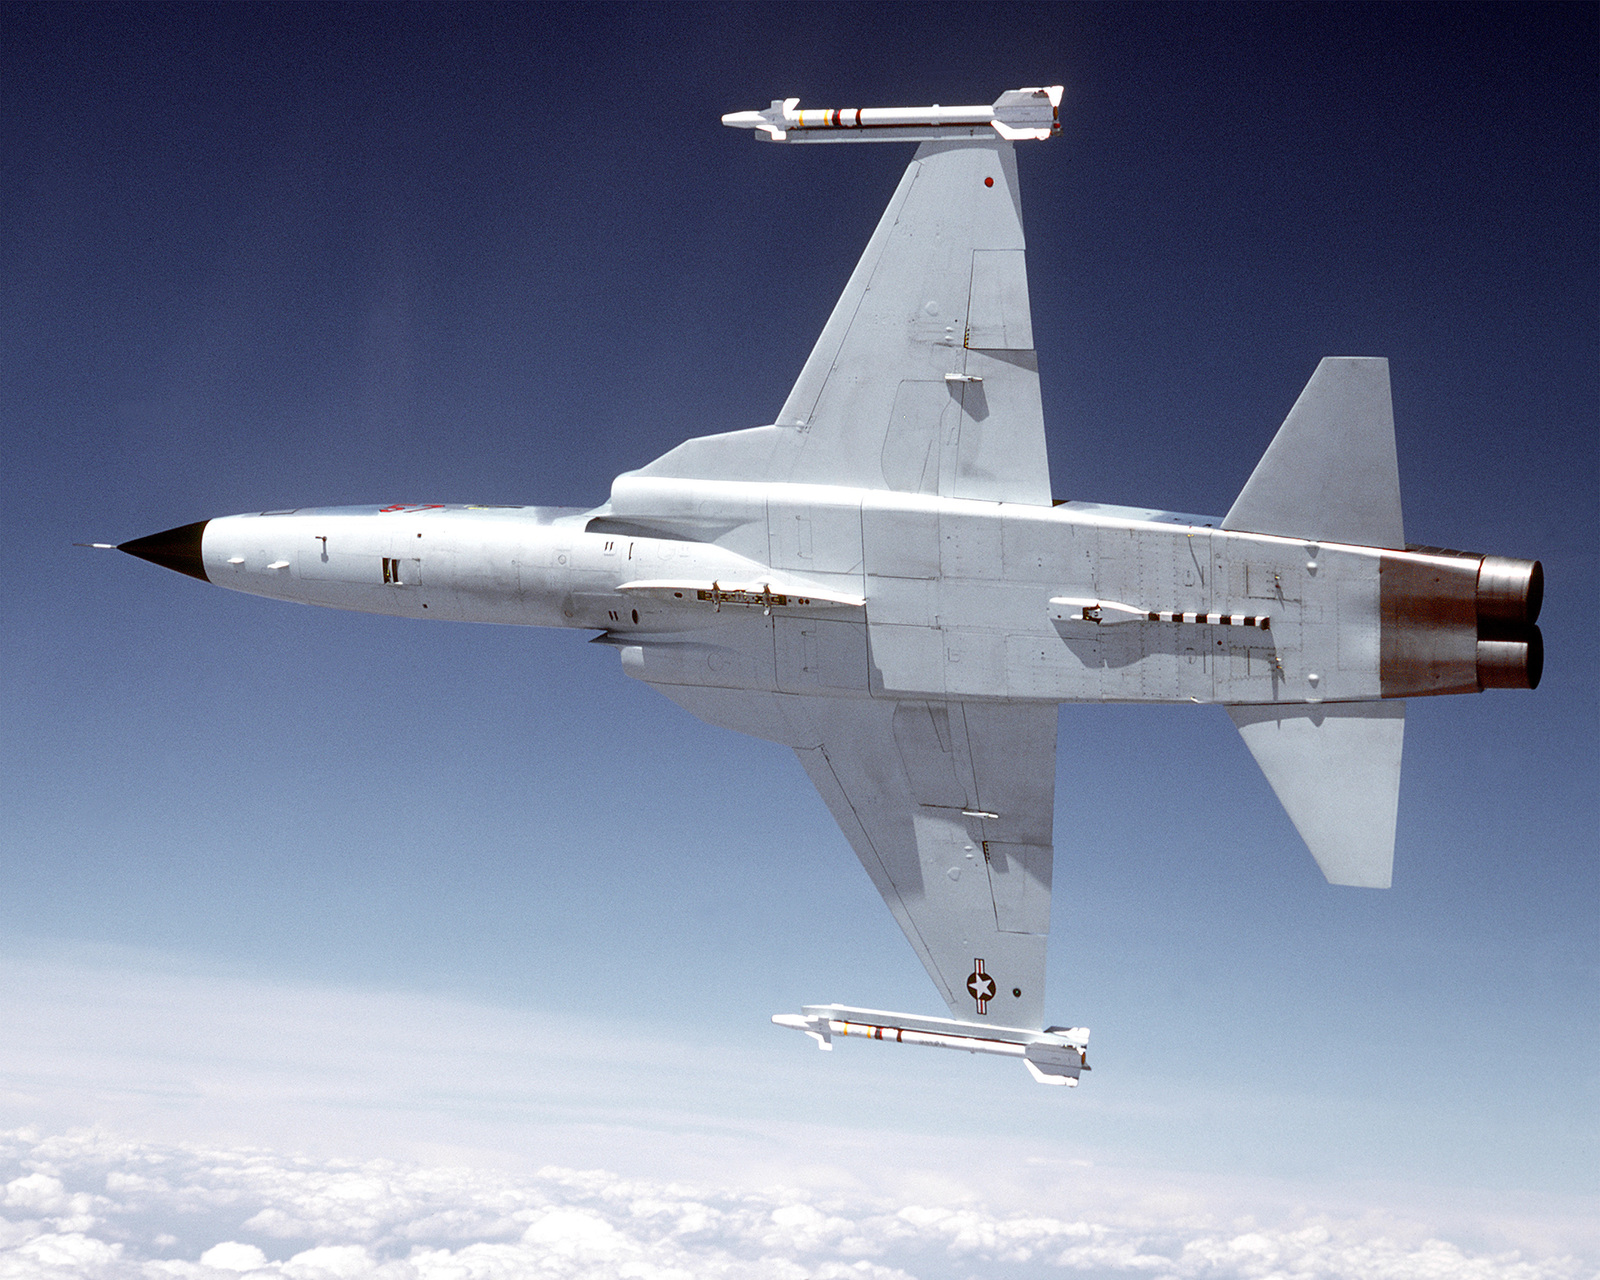 View of the bottom of an F-5 Tiger II aircraft as the jet banks to the right over a range. One AIM-9J Sidewinder missile is on each wing tip. The aircraft is assigned to the 57th Fighter Weapons Wing